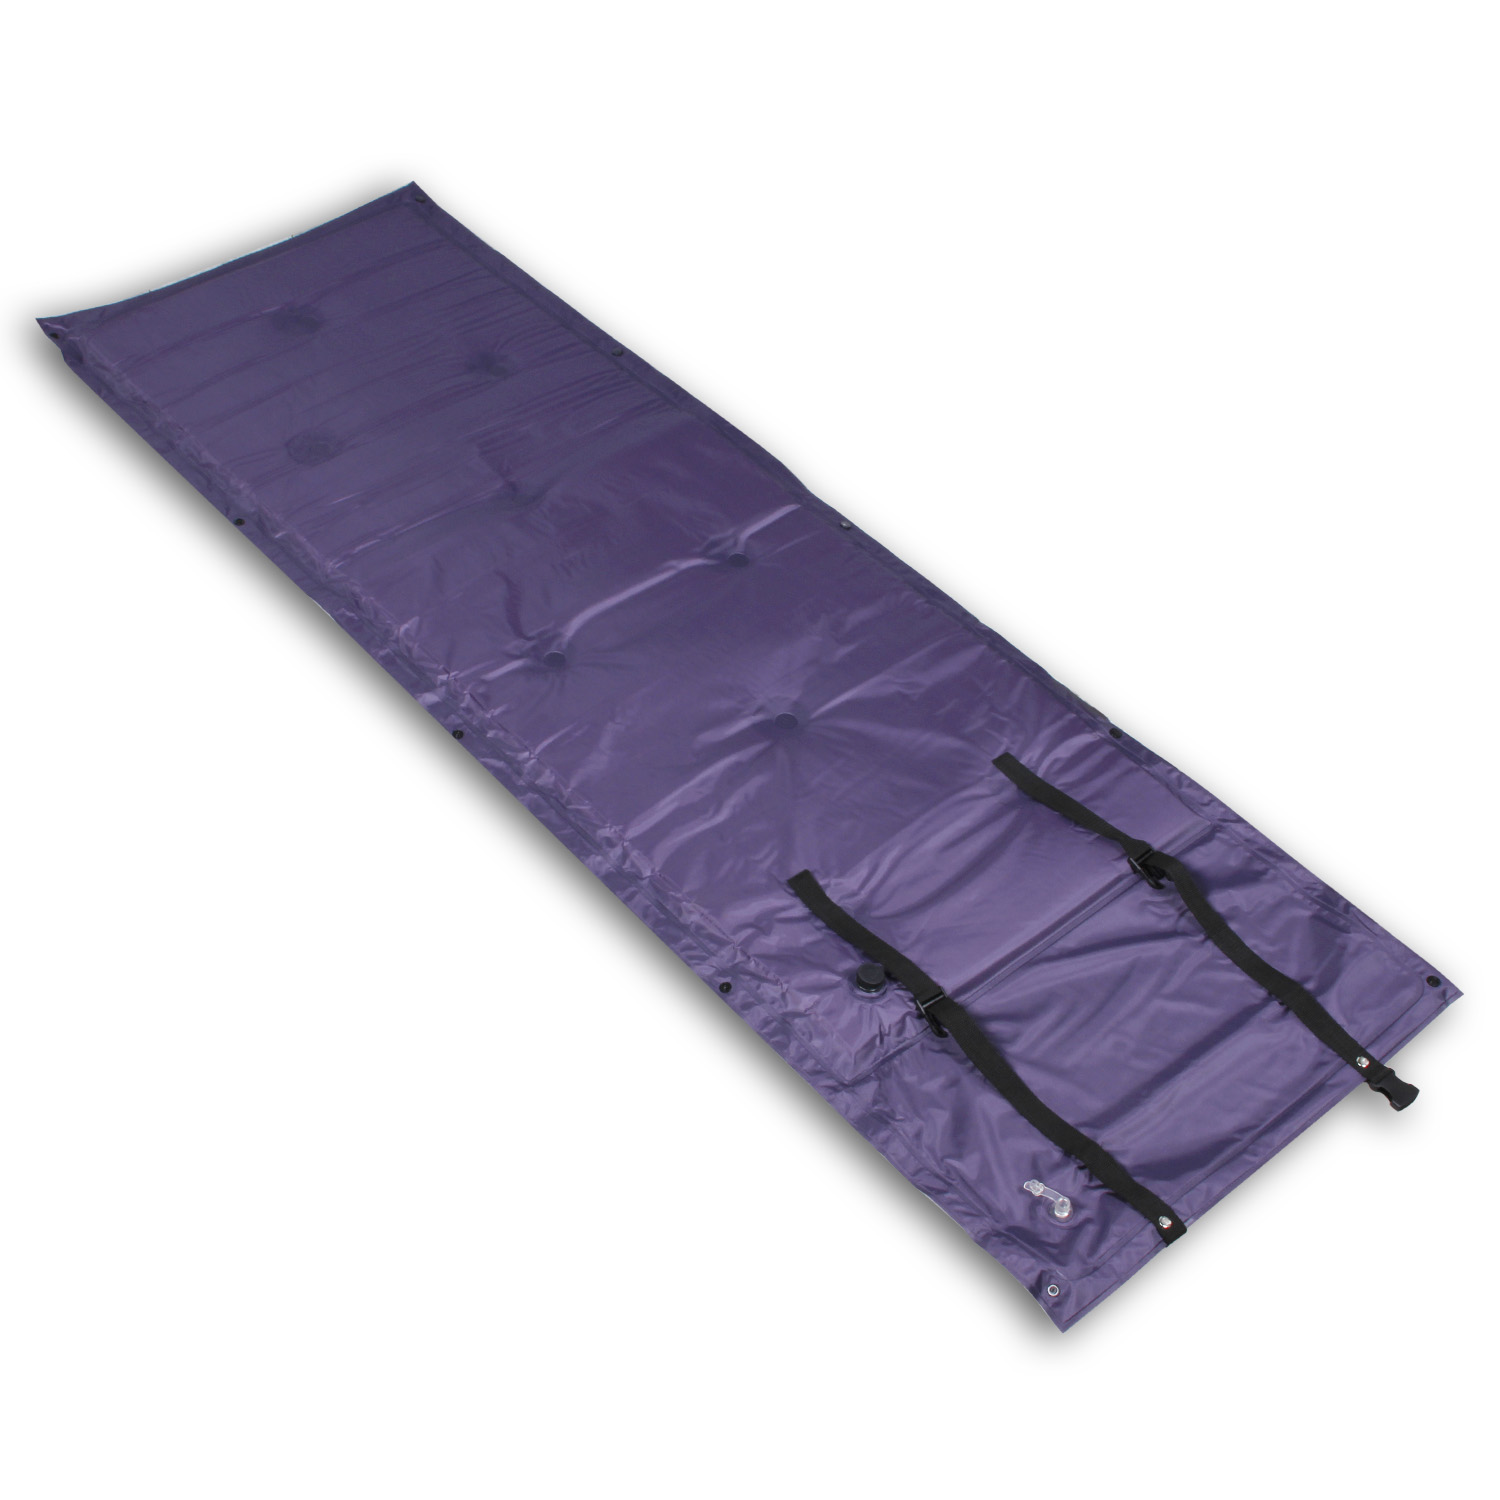 CBD PVC Waterproof Light Weight Self-Inflating for Camping Inflatable Backpacking Sleeping Pad Purple 1 PCS